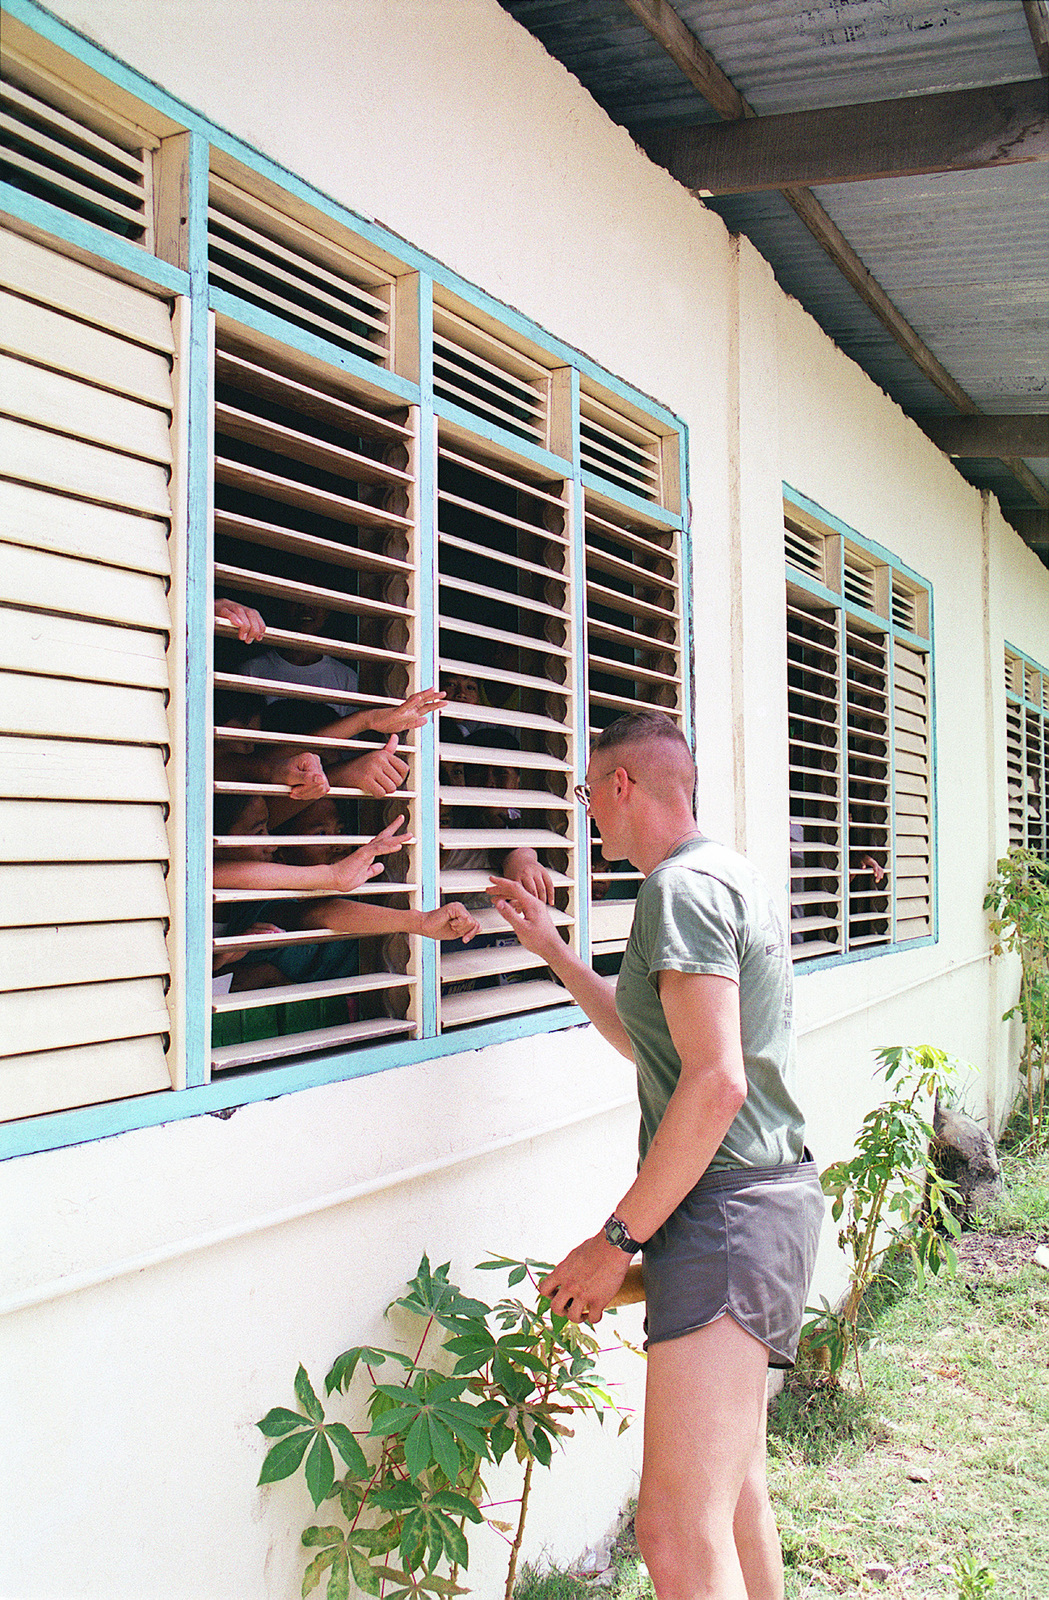 Lance Corporal (LCPL), Jonathan K. Huckstep, USMC, 1ST Battalion, 3rd Regiment, 3rd Marine Division, Okinawa, shakes hands with students through the shutter windows at Sapang Elementary School, Philippines. LCPL Huckstep is taking part in the community relations campaign during Exercise BALIKATAN 2000. BALIKATAN 2000 is a joint combined field training exercise held between US and Philippines forces, and is the largest of its kind since 1995